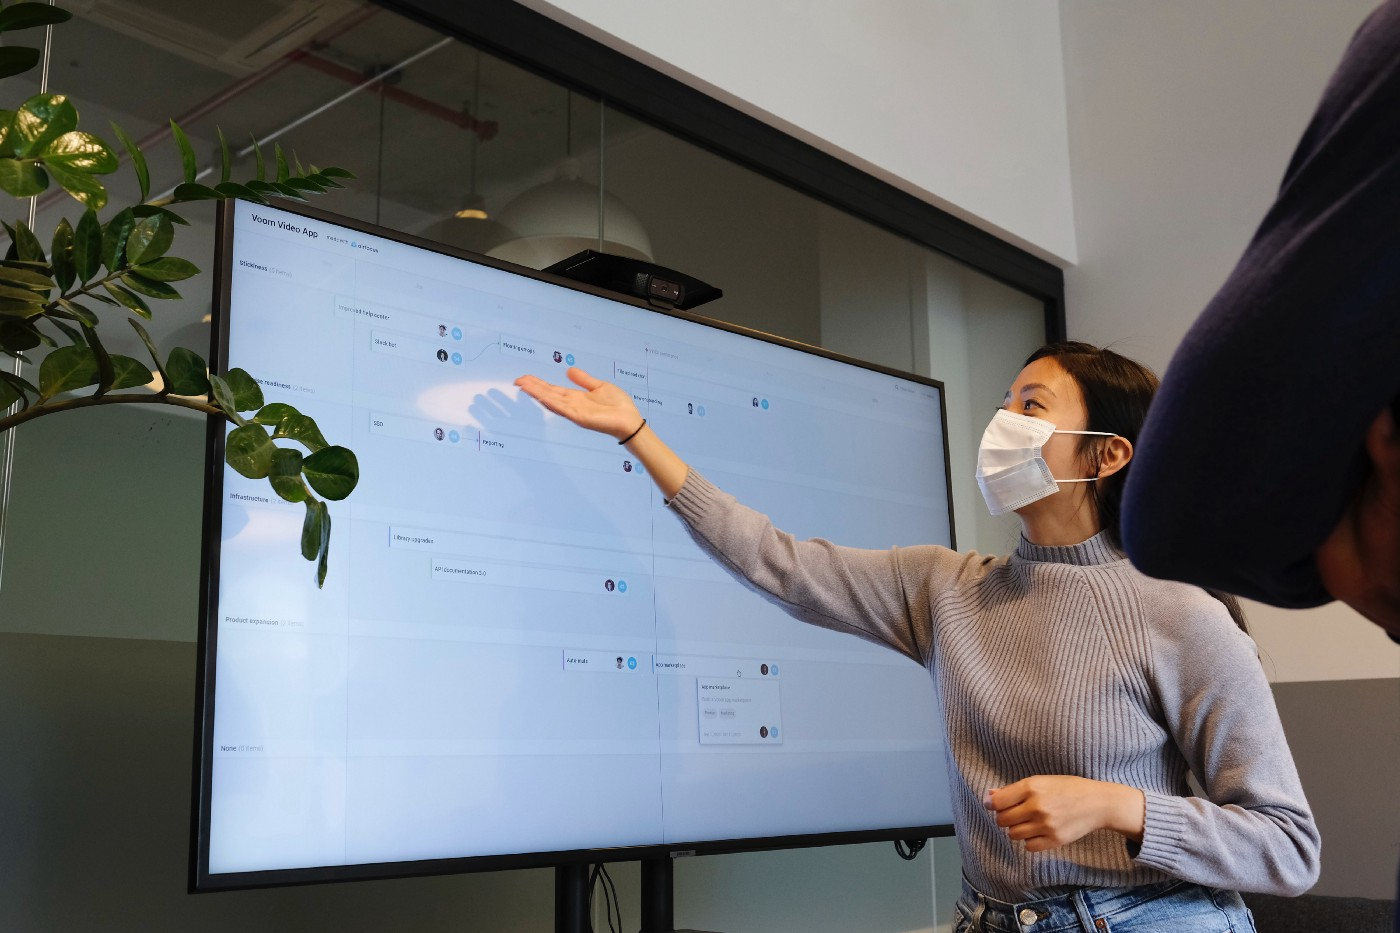 A woman in a mask gesturing to a TV screen to showcase specific design elements.